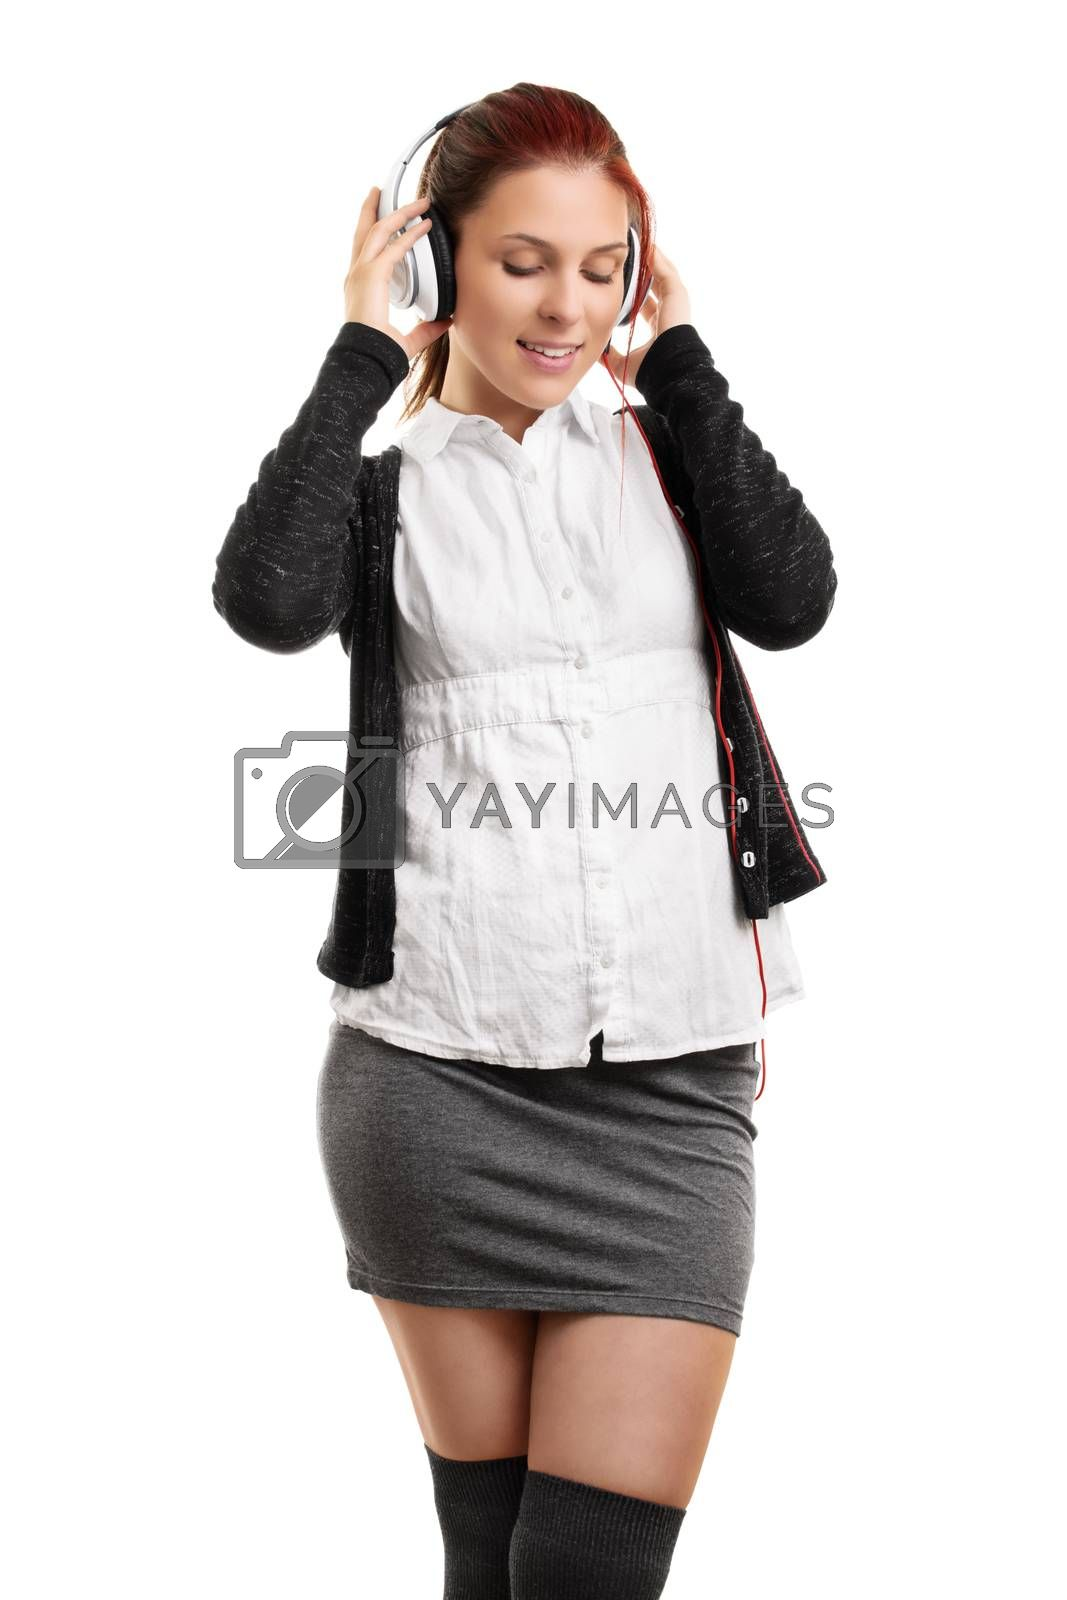 Young woman enjoying music on her headphones by Mendelex